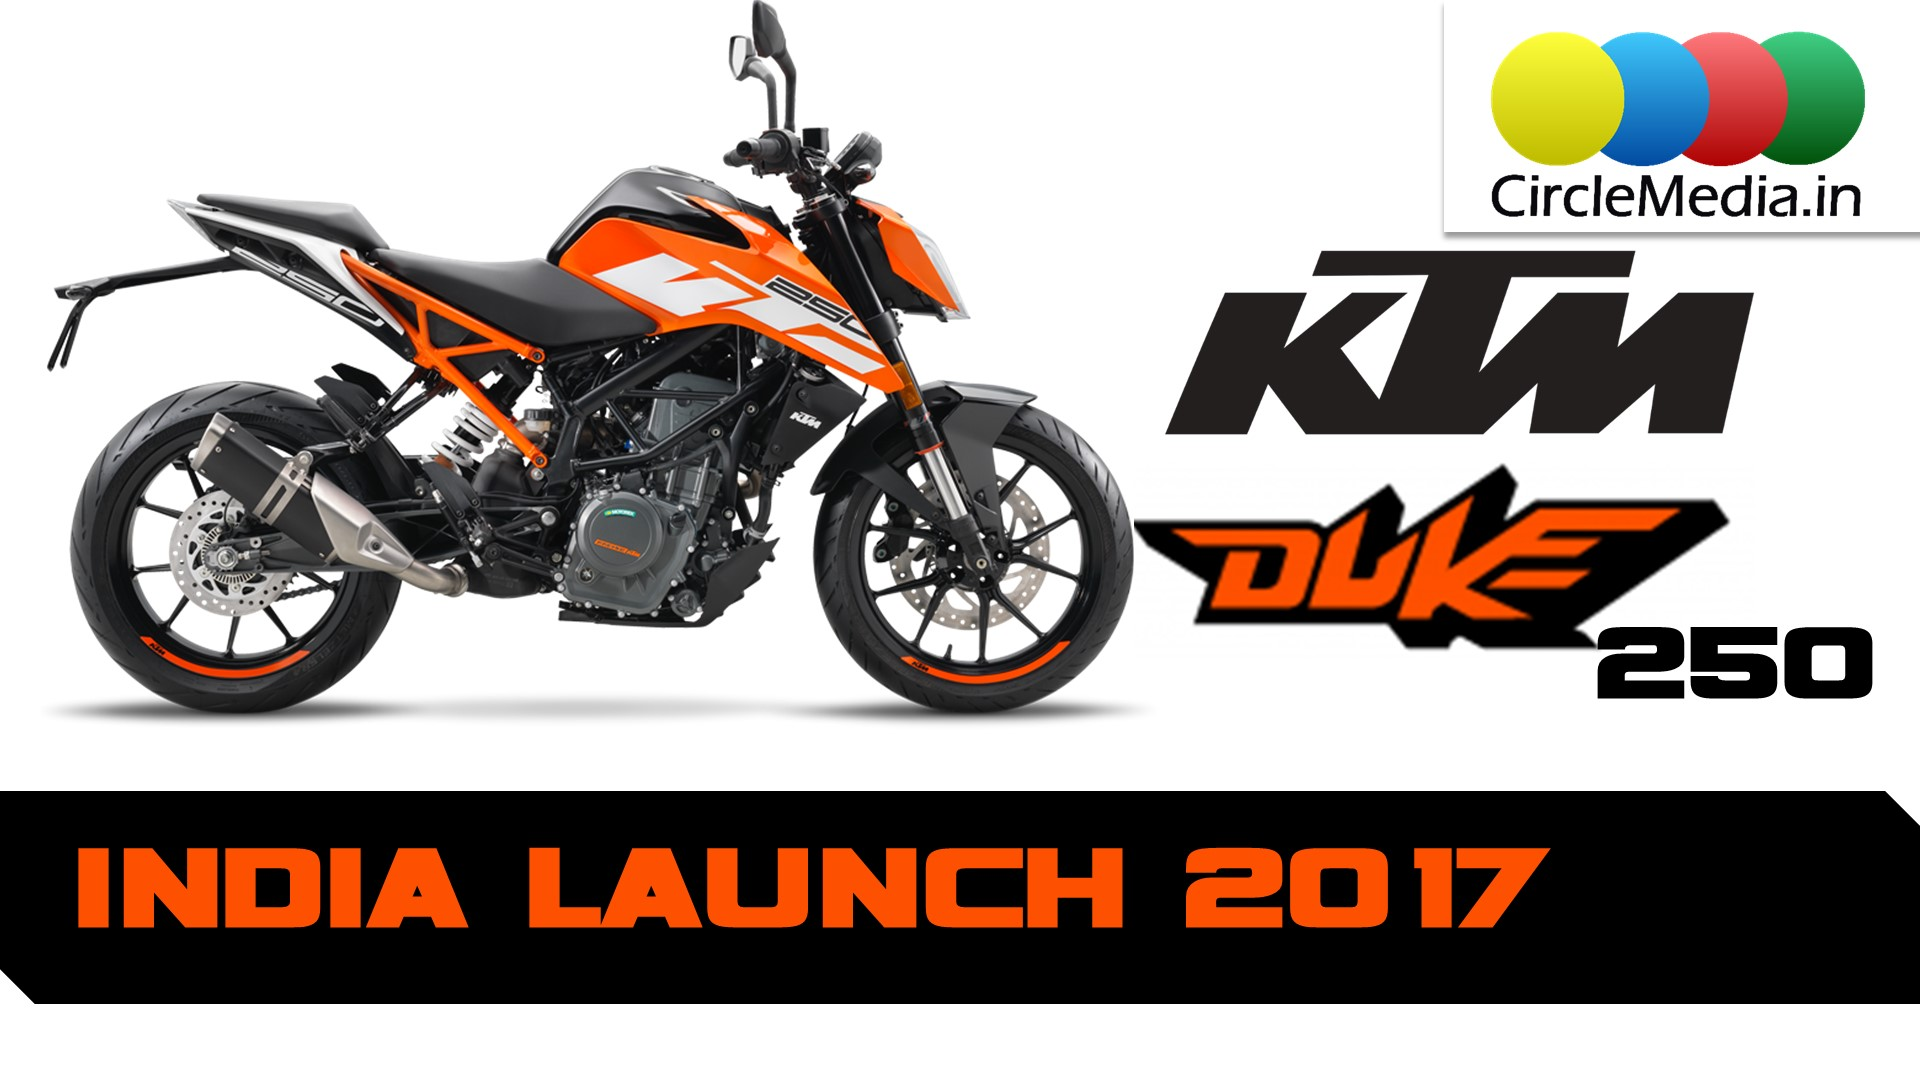 ktm 250 duke 2017 | ktm duke 250 abs |  KTM Duke siblings launched in India | CircleMedia.in